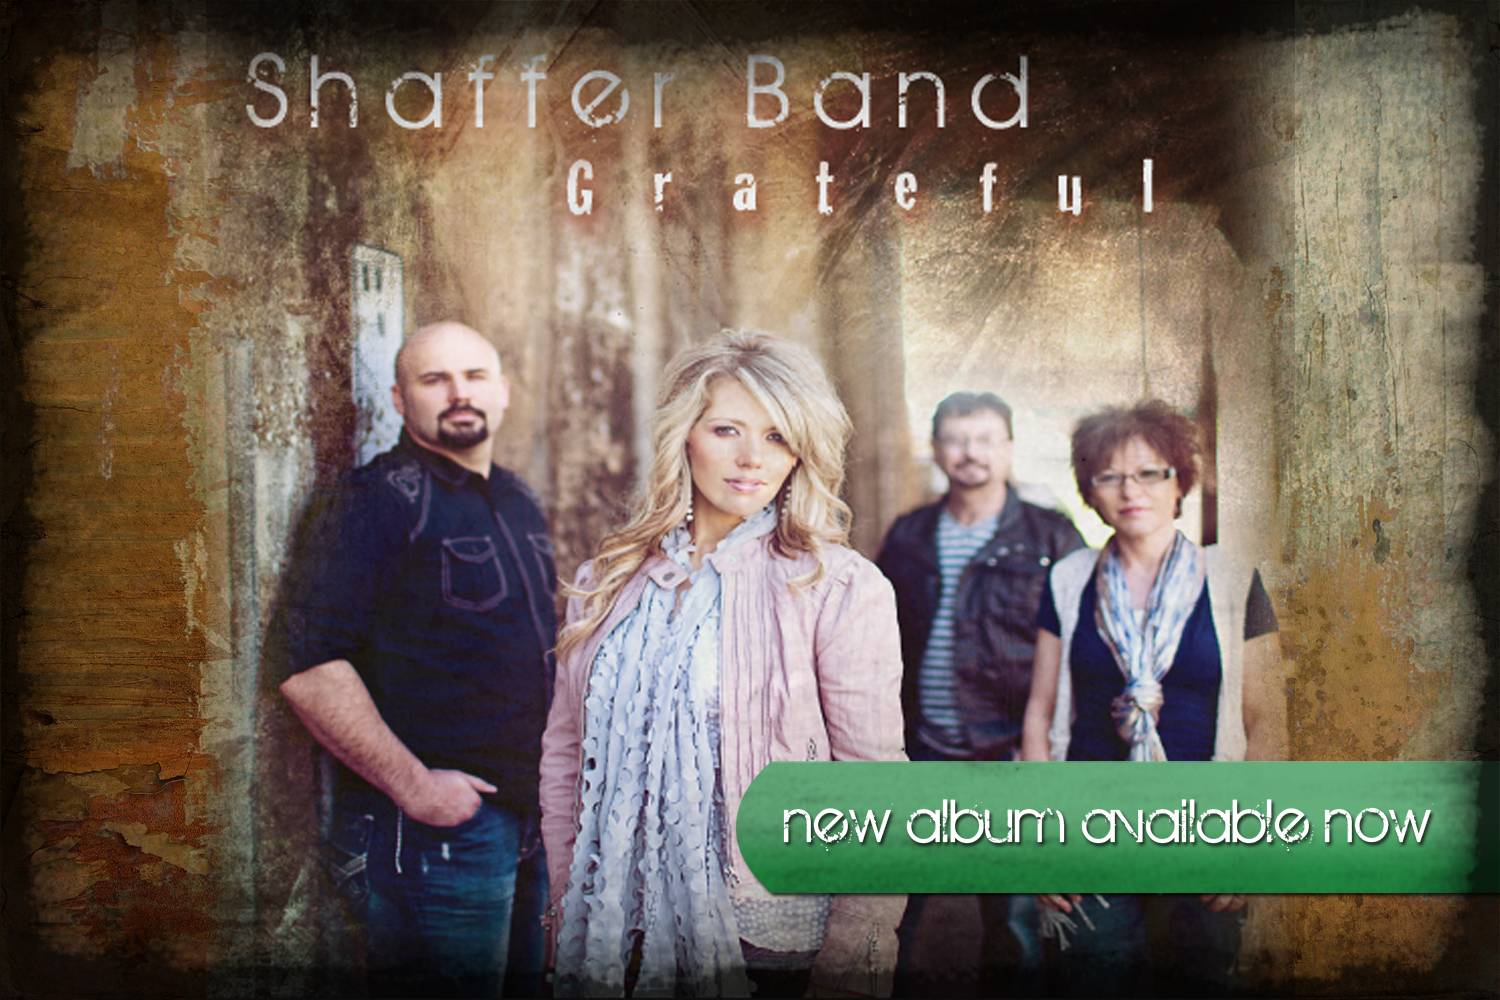 shaffer cassie band hymes grateful believe belington wv west virginia dave trish mike gospel music country songs singing group shafferband artist artists groups bands festival church jesus god christian